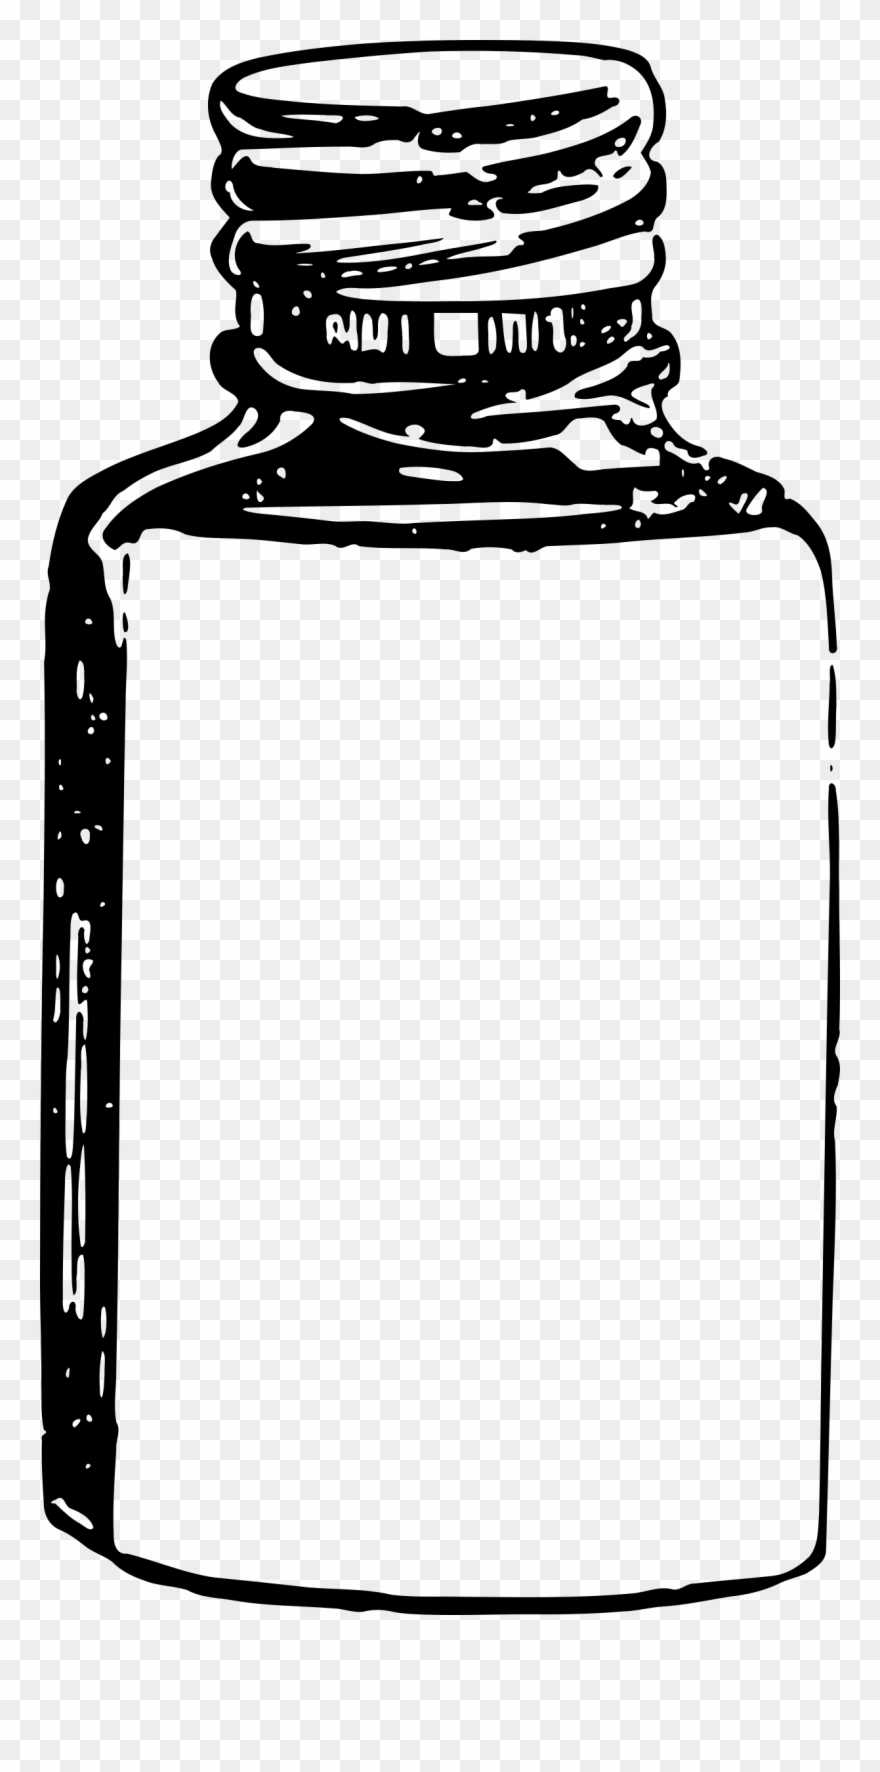 Black vector clipart medicine png clip black and white stock Pill - Bottle Medicine Vector Png Clipart (#259099) - PinClipart clip black and white stock